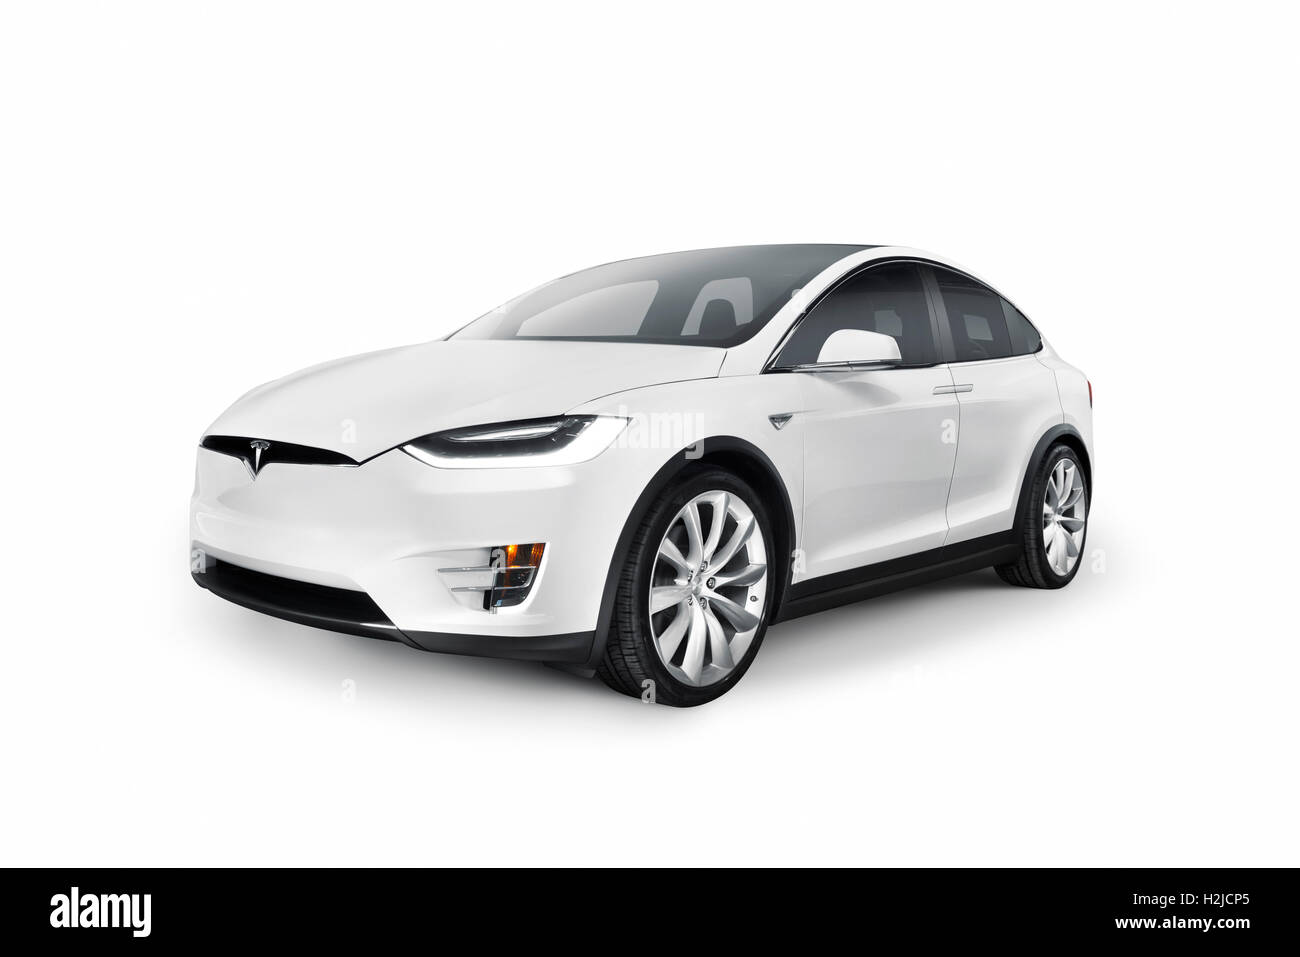 white 2017 tesla model x suv de luxe voiture lectrique isol sur fond blanc avec clipping path. Black Bedroom Furniture Sets. Home Design Ideas